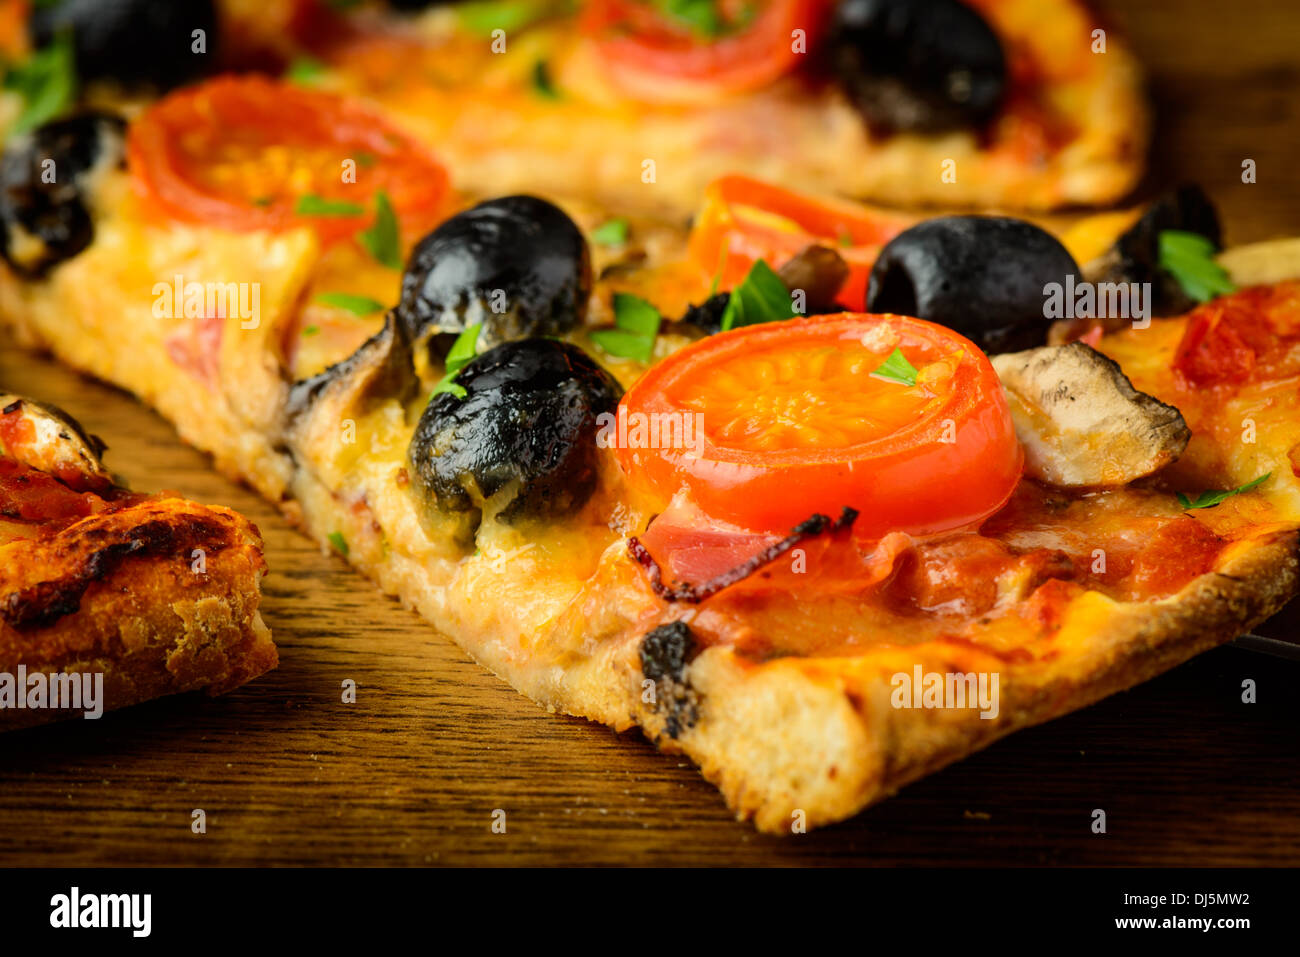 closeup detail of fresh baked traditional italian pizza - Stock Image